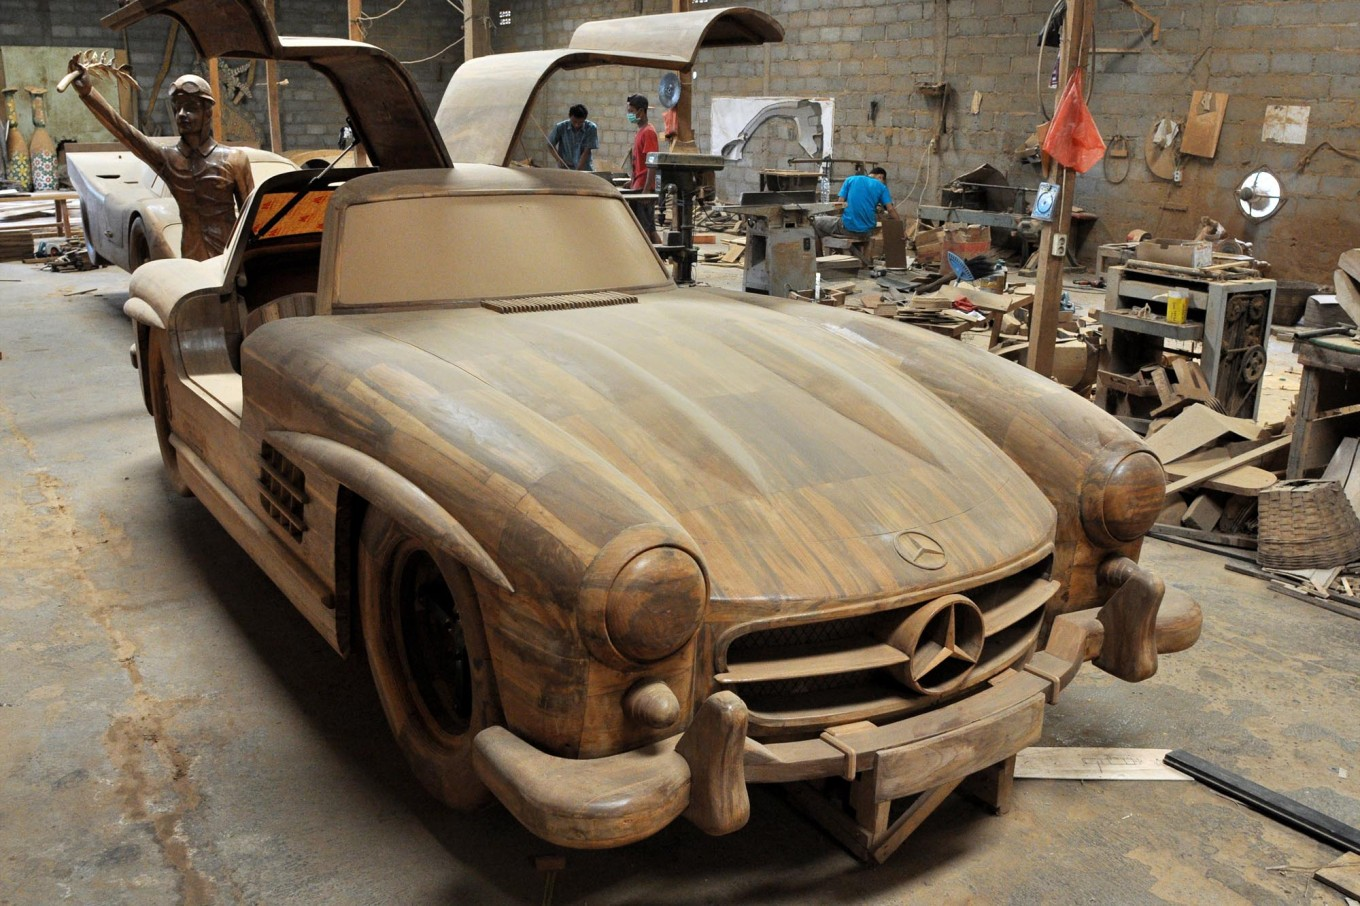 A replica of a Mercedes-Benz 300 SL gull-wing takes center stage in the Tetap Jaya Art workshop in Mojosongo village, Boyolali regency, Central Java. JP/Magnus Hendratmo